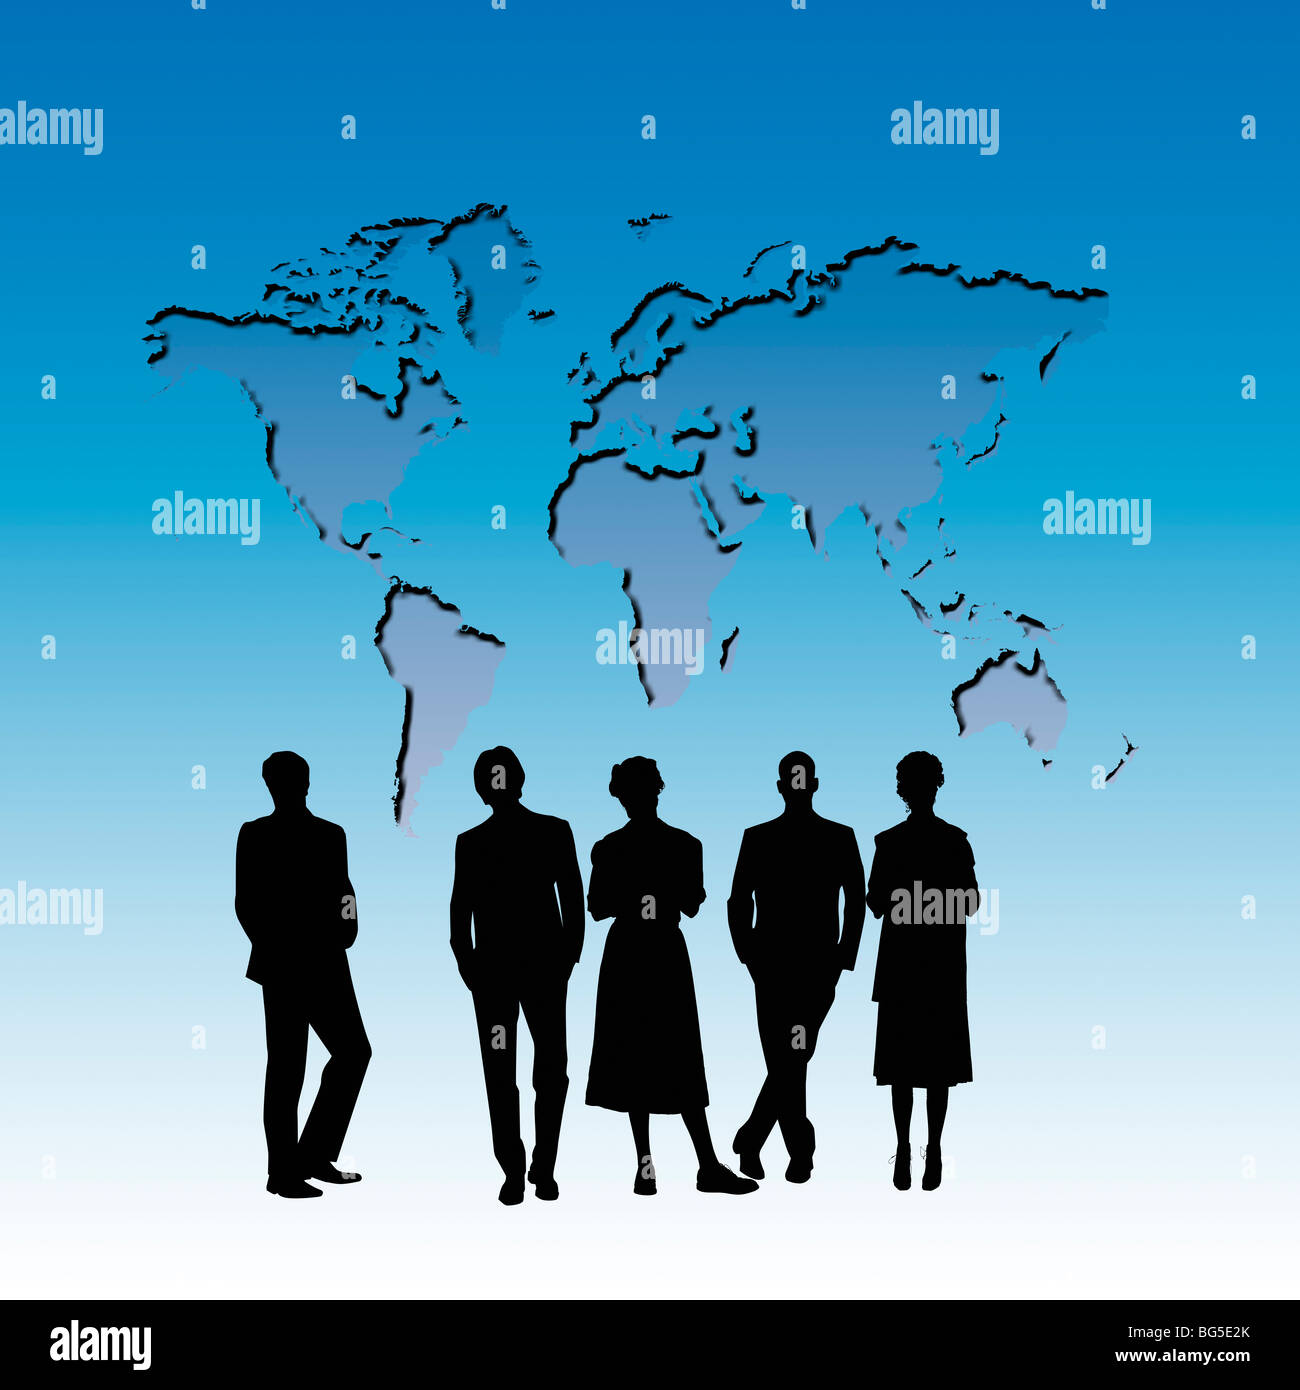 Silhouettes Of People Looking At An Outline Of The World Map Stock - World map silhouette poster